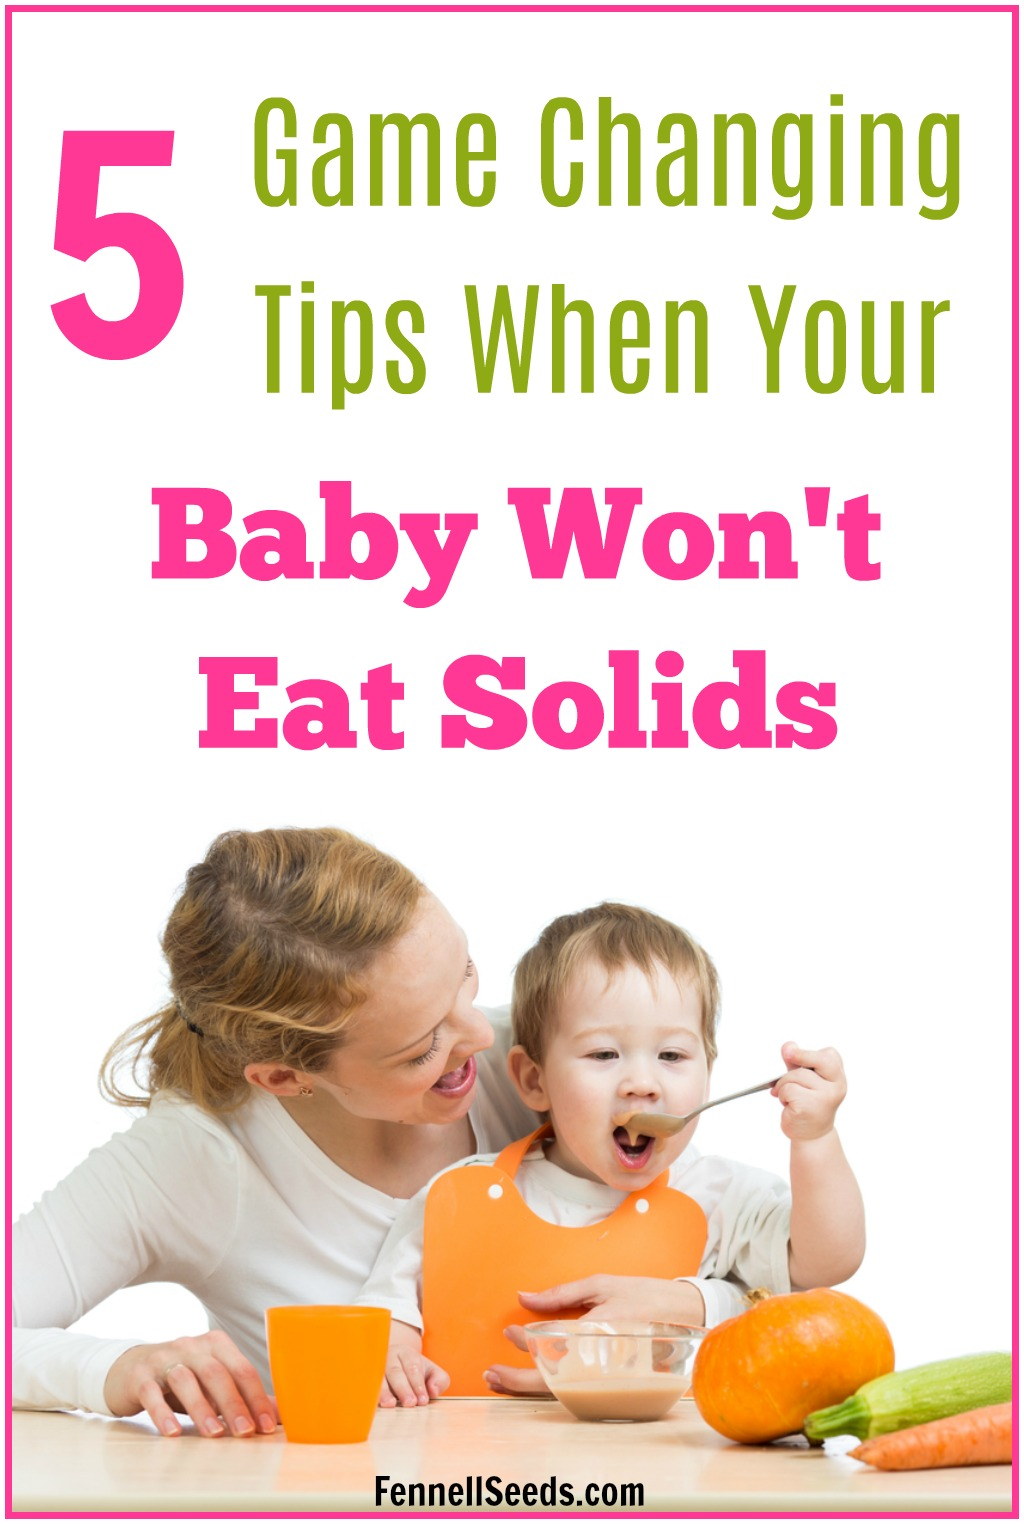 baby won't eat solids   refusing solids   how to get baby to eat solids   how to get your baby to try new foods   how to get a baby to eat   won't eat baby food